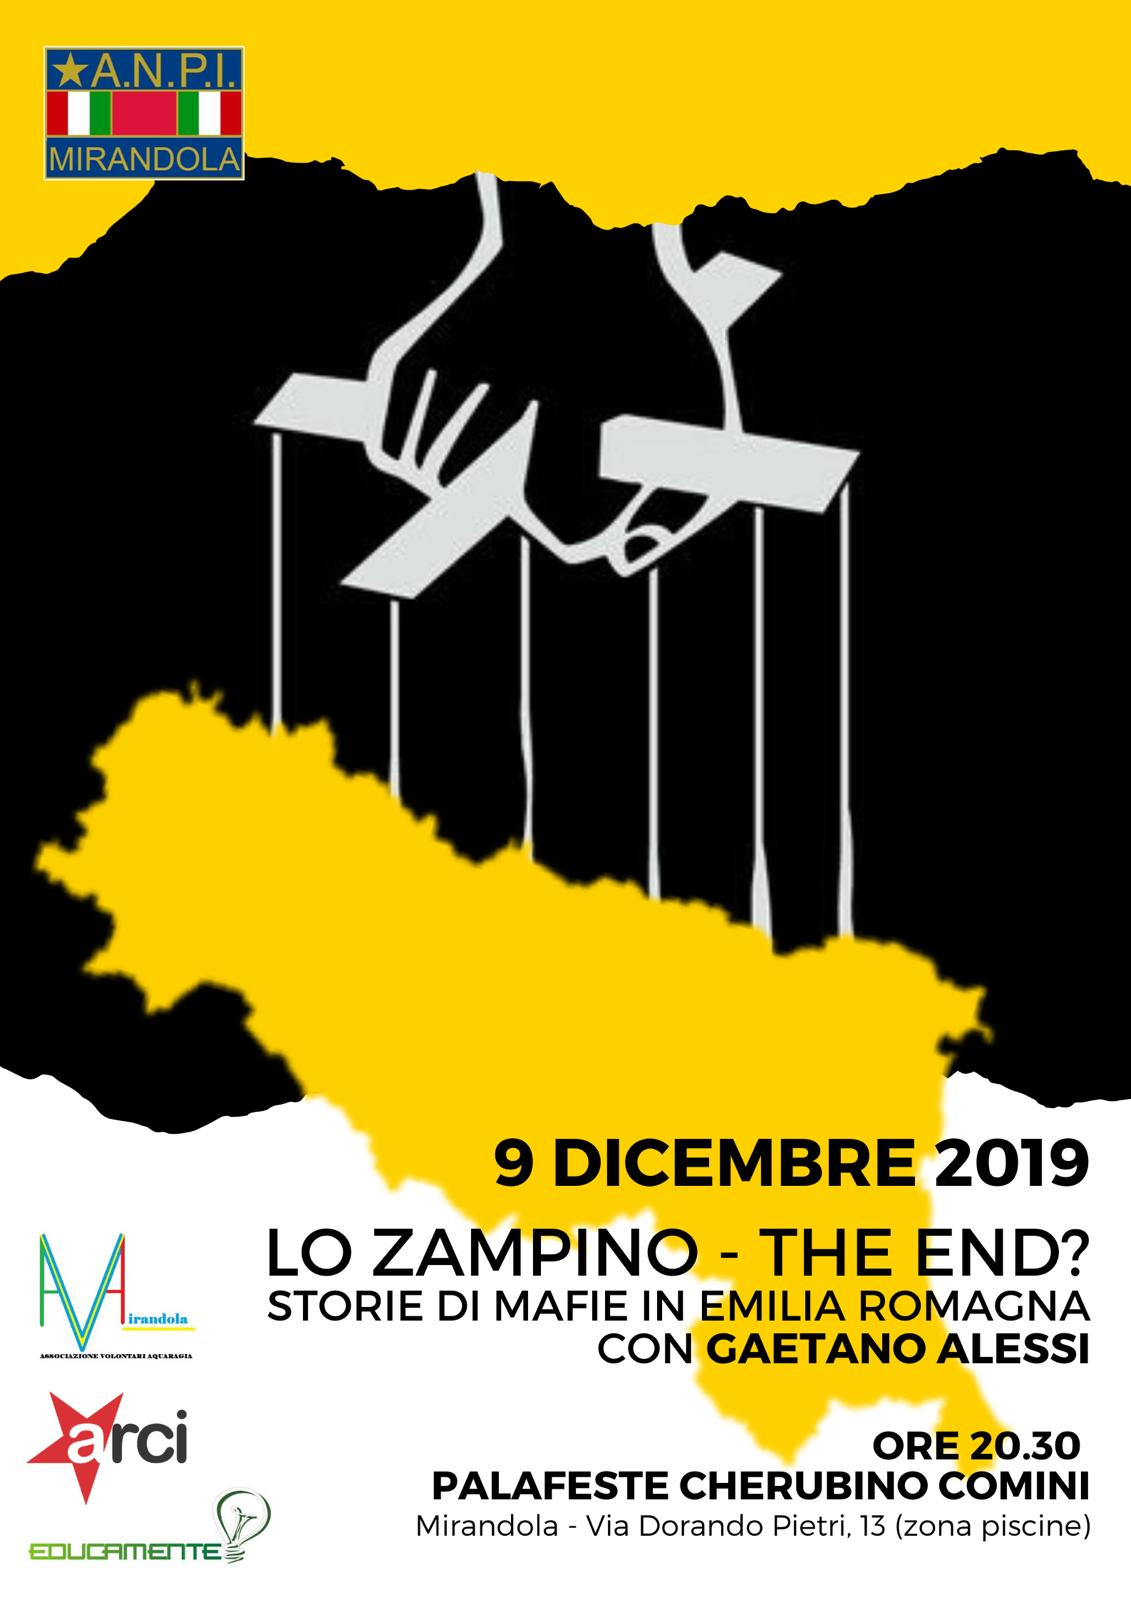 Gaetano Alessi Lo zampino the end?